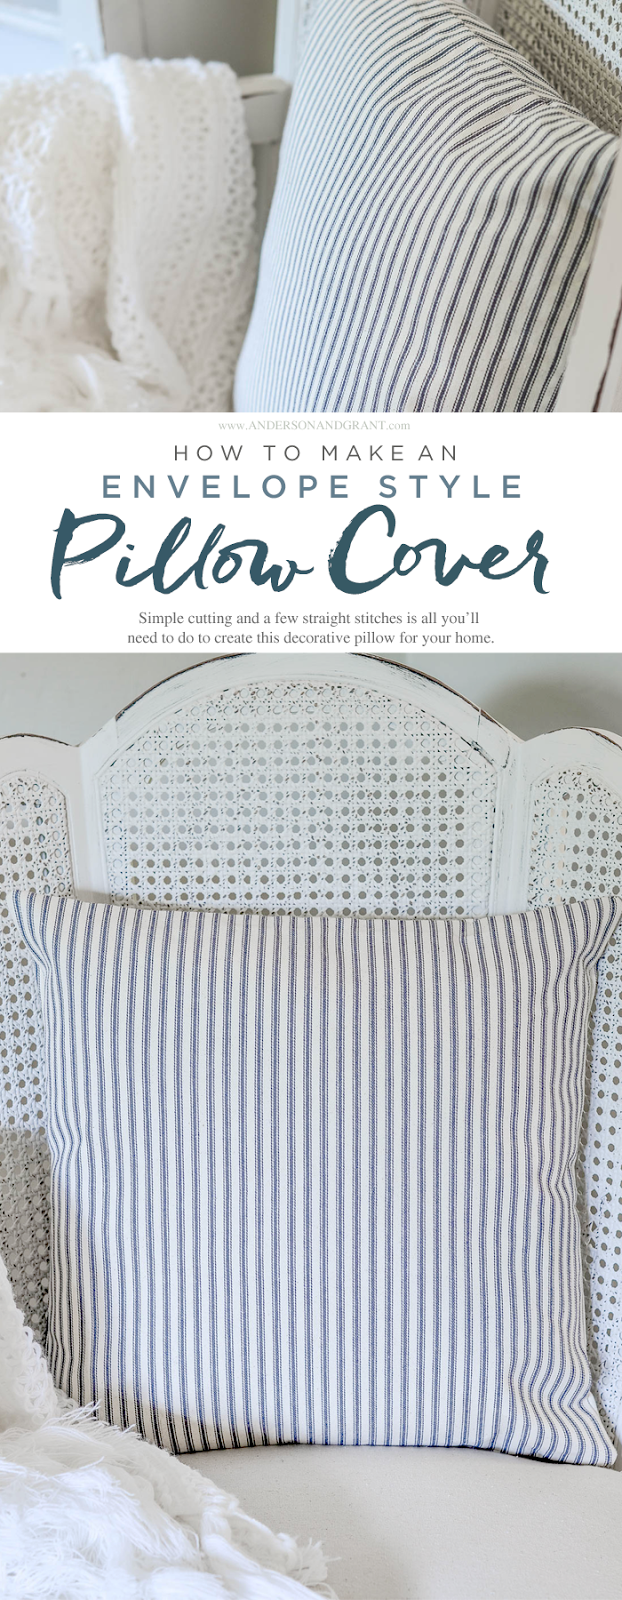 How to Make an Envelope Pillow Cover Tutorial - an easy project for a sewing beginner #DIY #sewing #DIYpillow #andersonandgrant